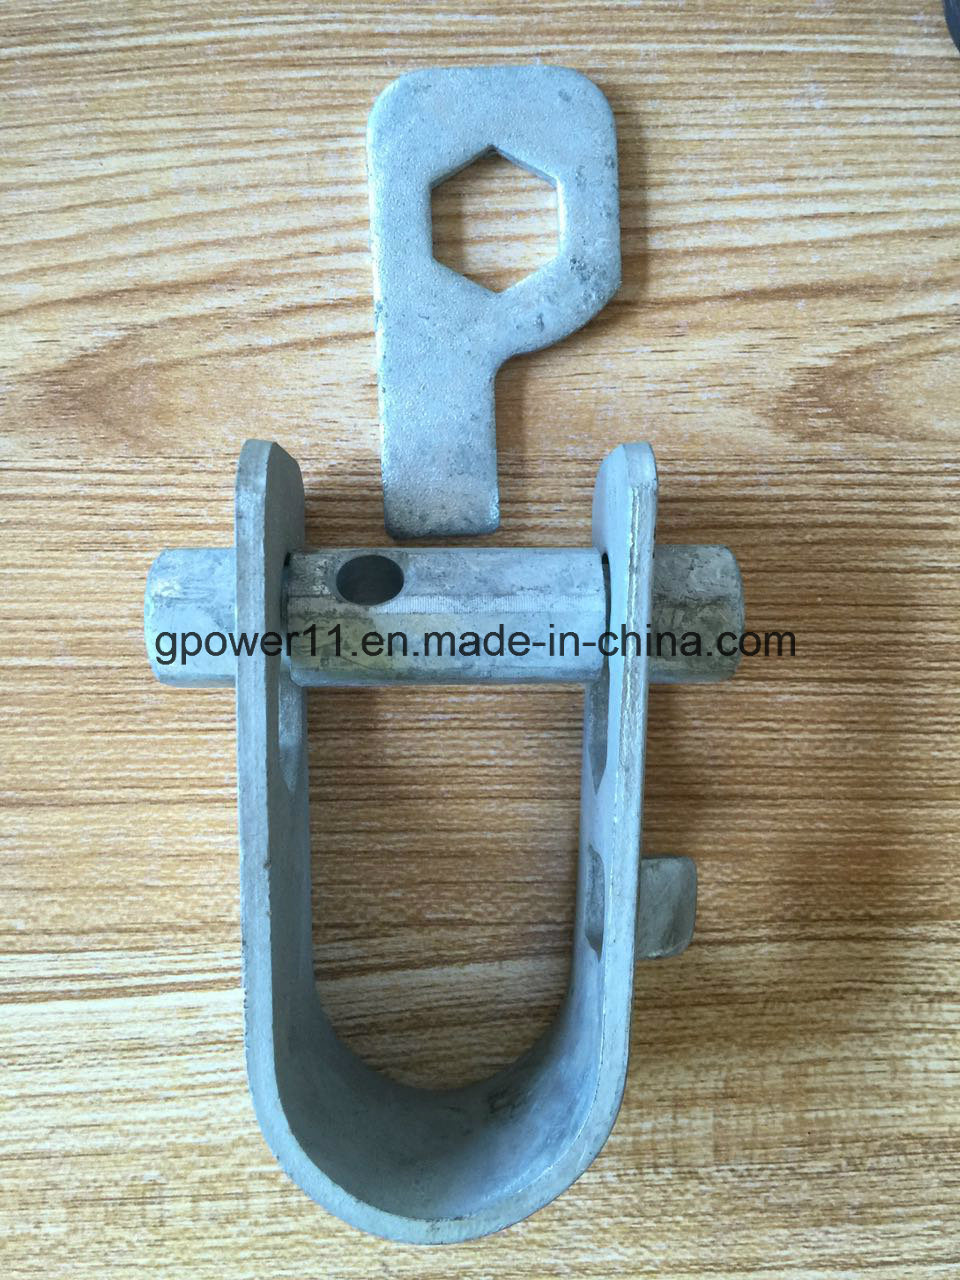 China Rigging Hardware Wire Rope Fastener Adjuster Tension Fence ...